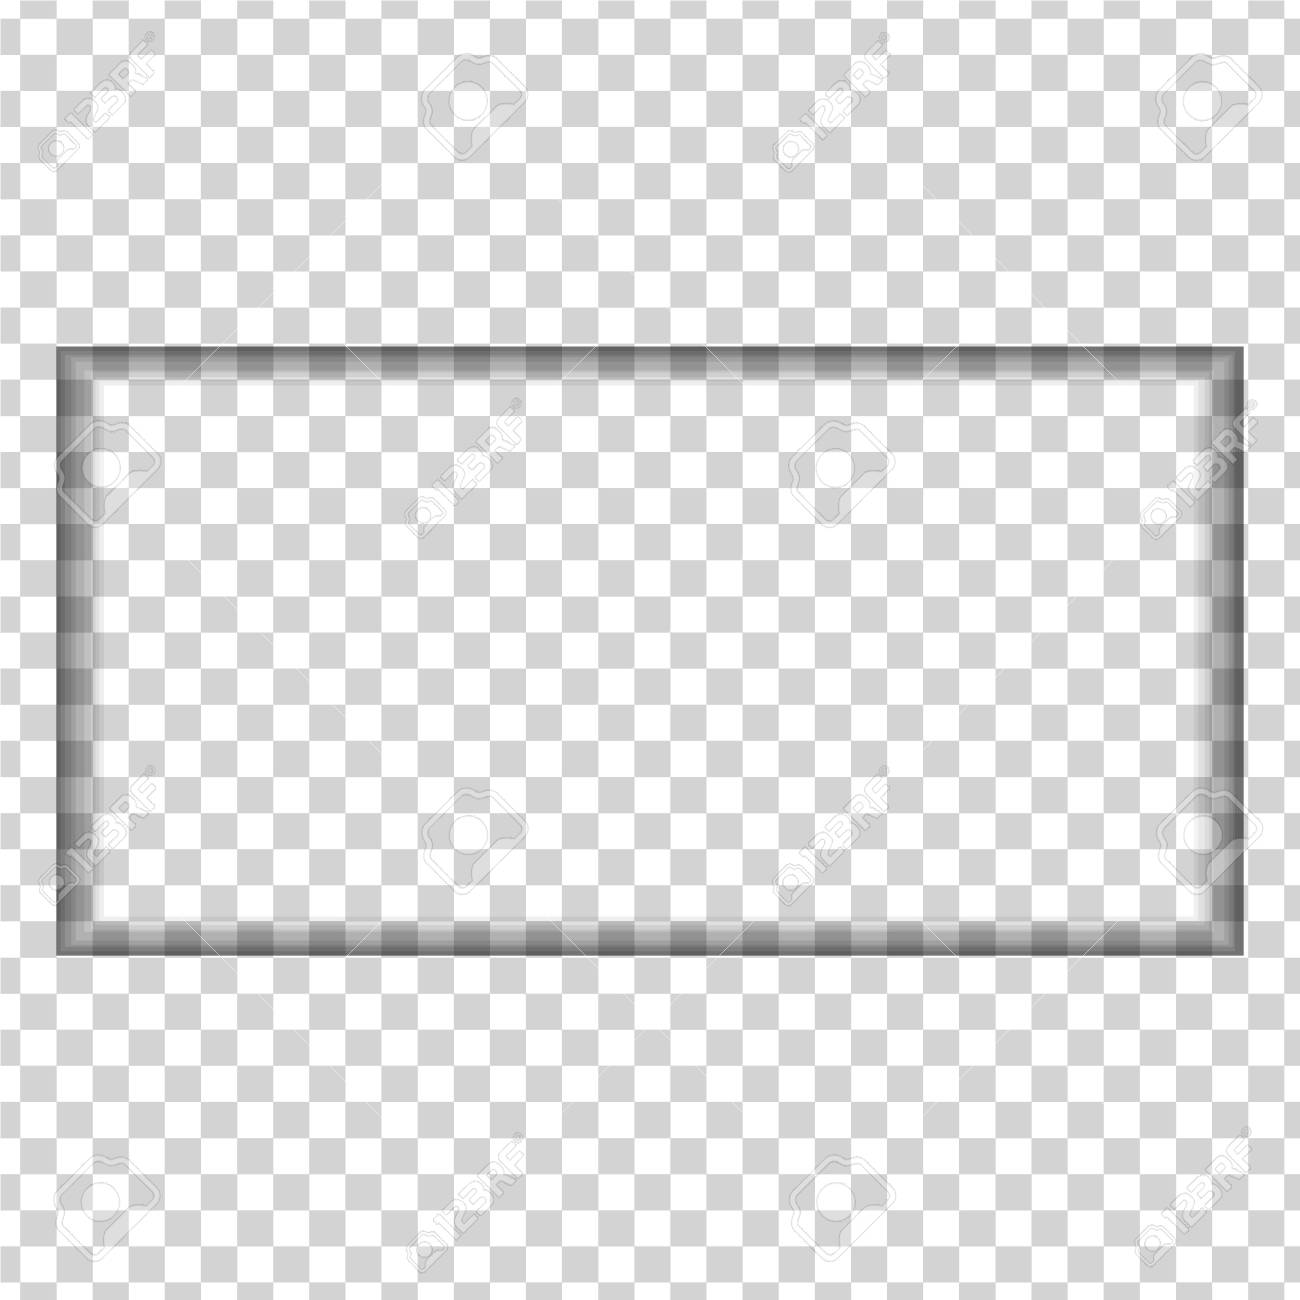 Hole Carved In The Shape Of A Rectangle On A Transparent Background Royalty Free Cliparts Vectors And Stock Illustration Image 114956644